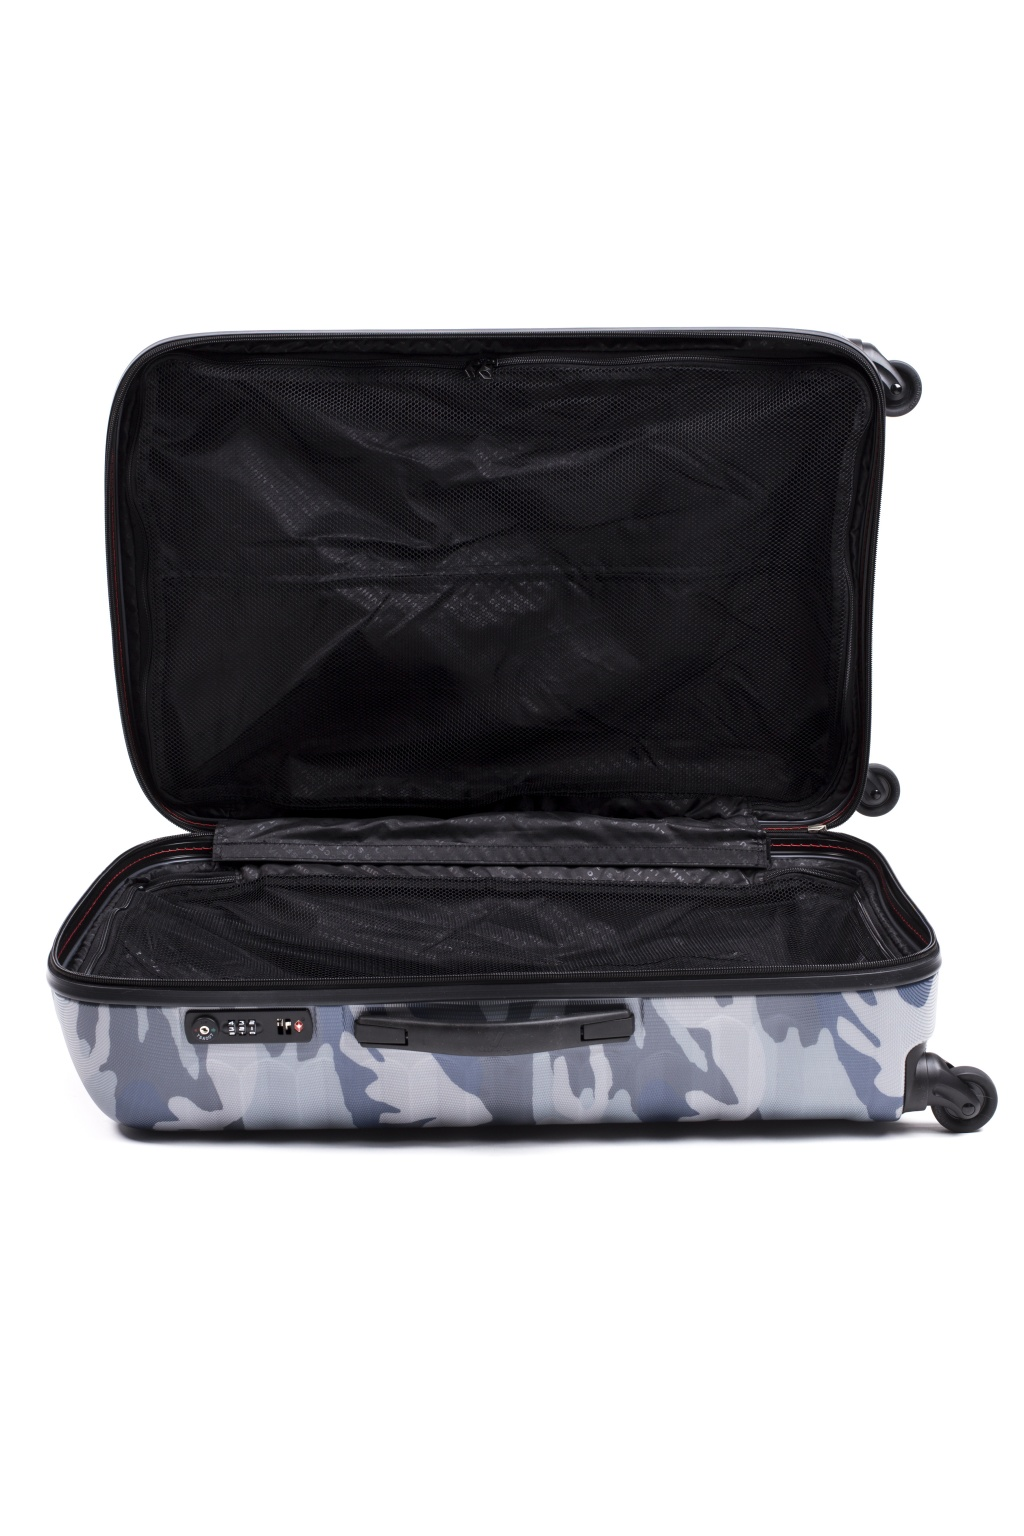 Diesel 'Move M' travel bag